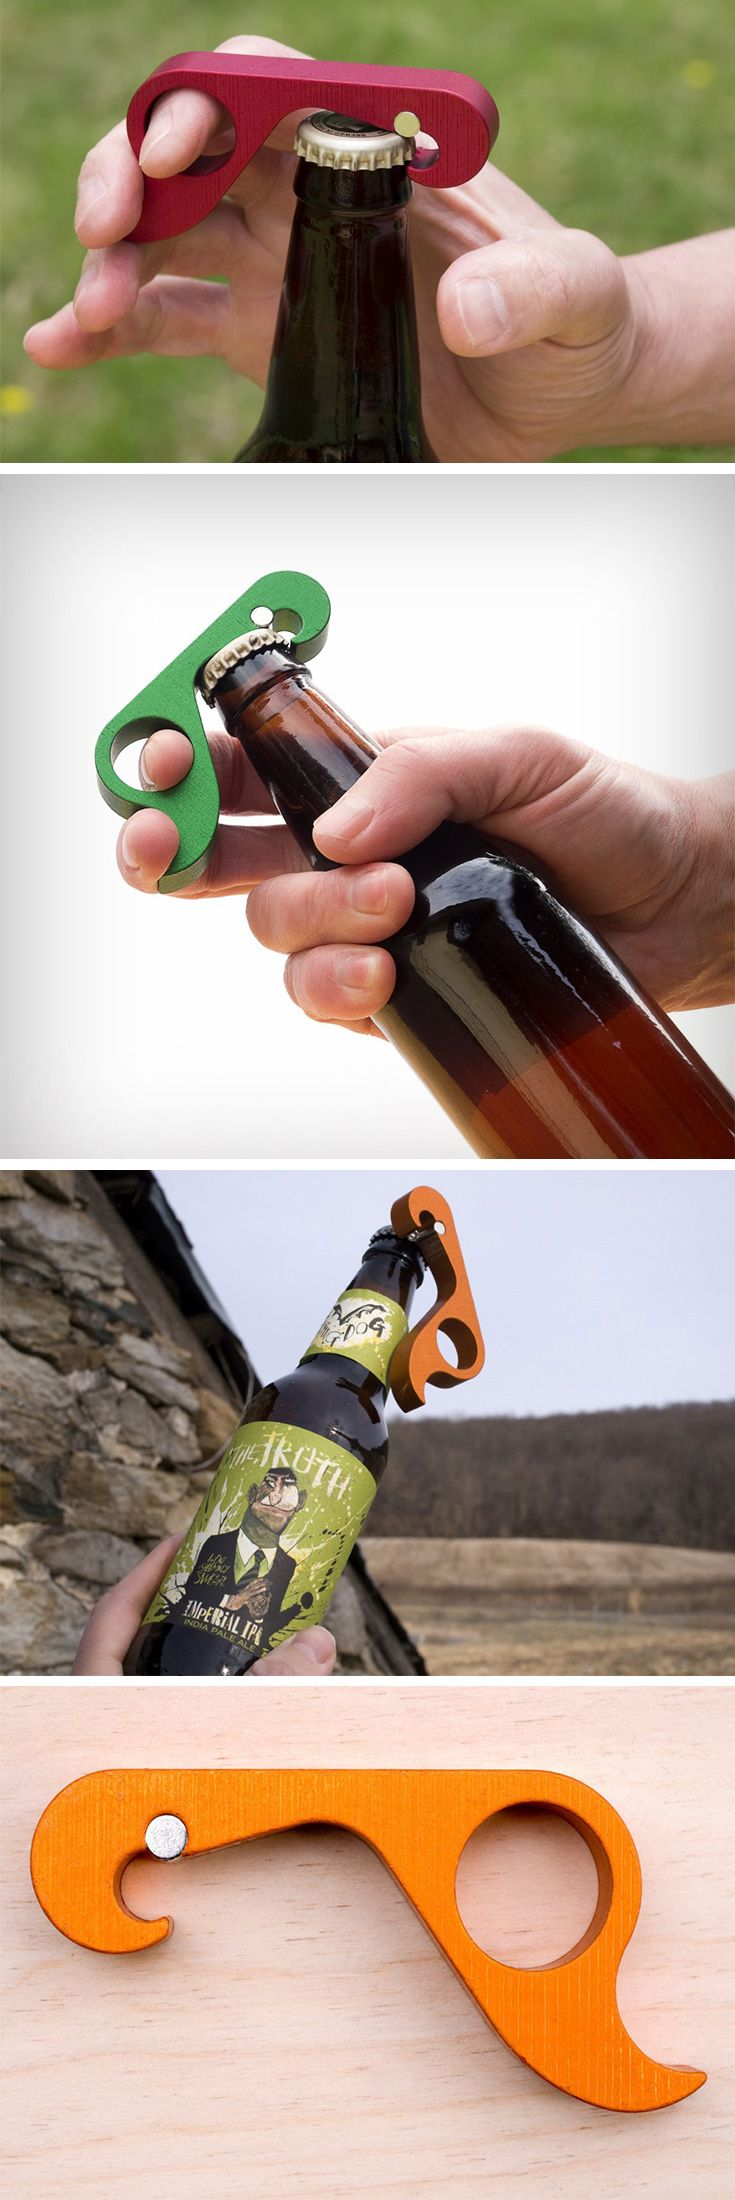 The GrOpener (Grab+Opener) is a bottle opener designed specifically for single handed use. Making things easy for both abled as well as disabled people, the GrOpener sits comfortably on a bottle top and pops it open with an unbelievably easy trigger action.